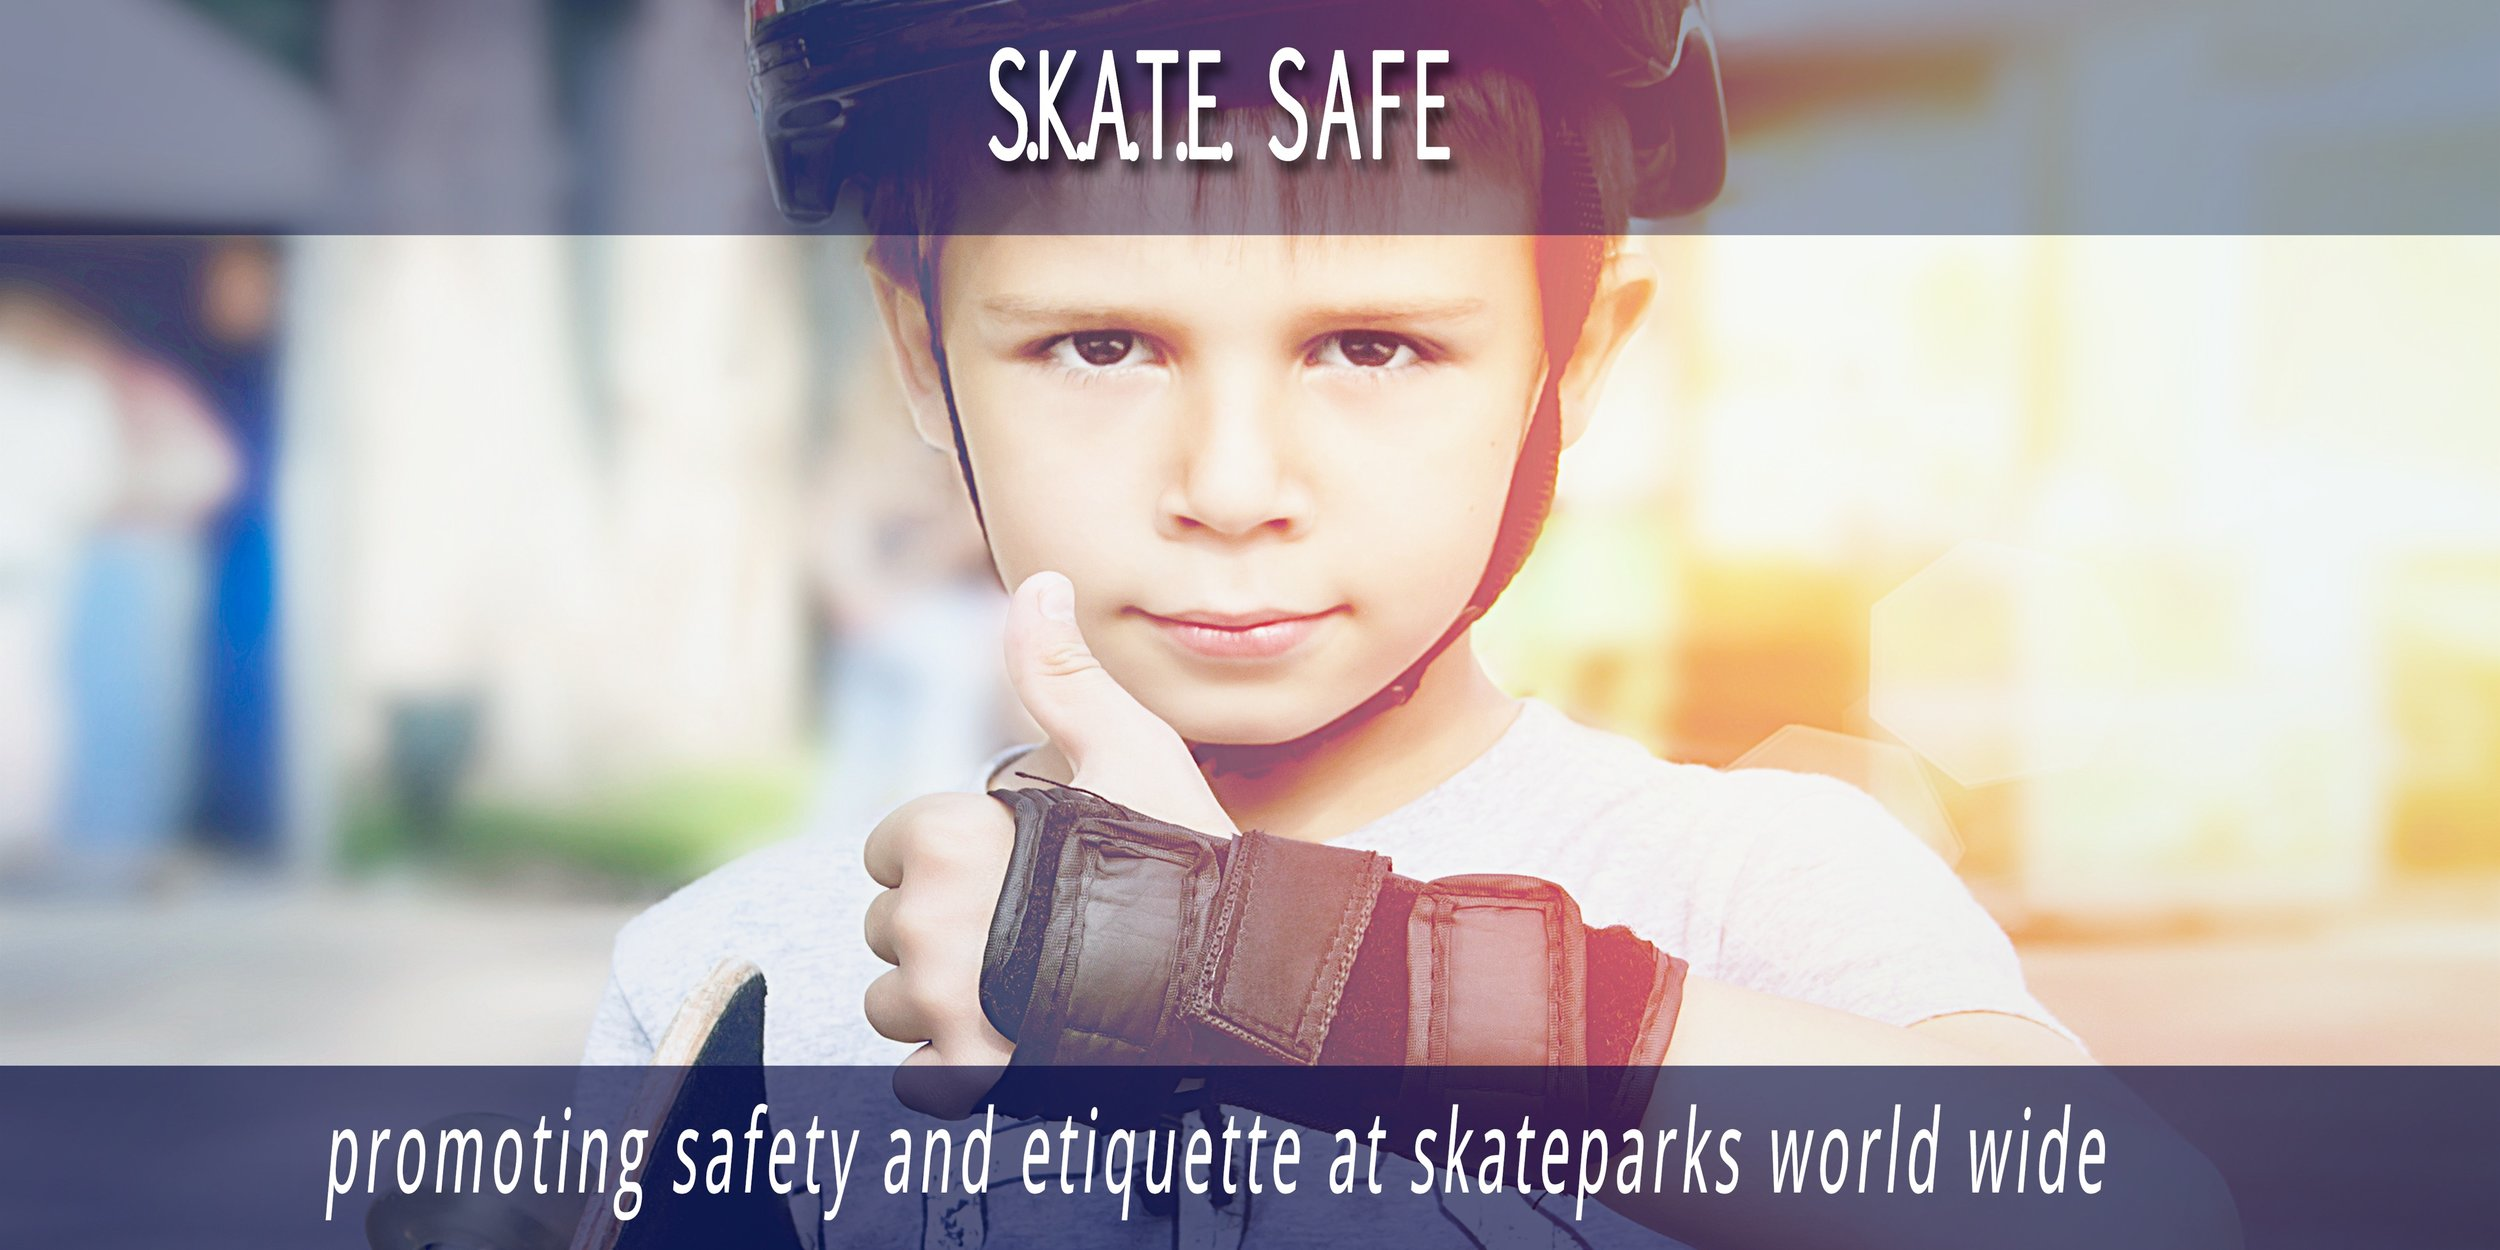 skatesafe_Fotogenic.jpg